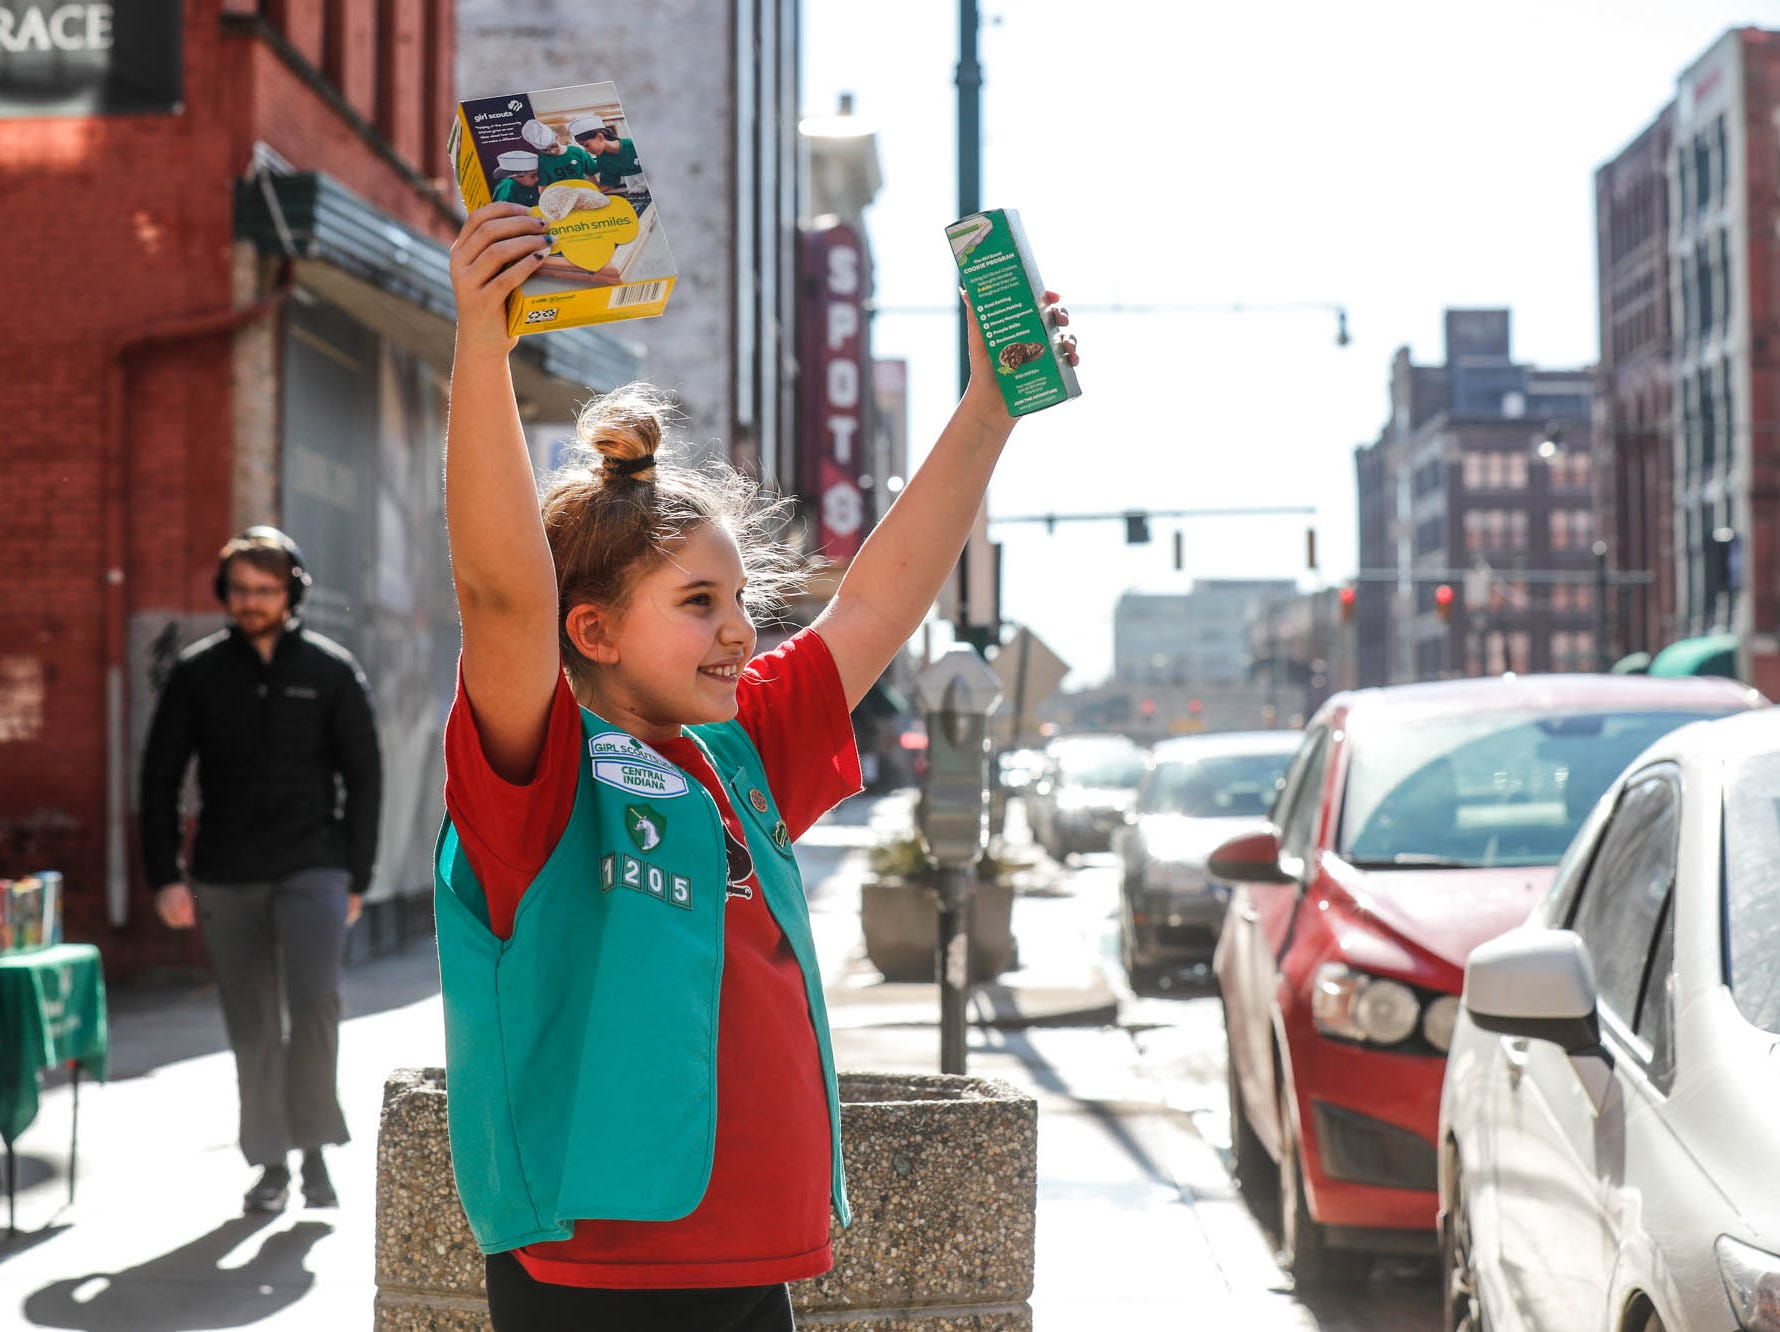 Lyndsey Baker, from troop 1205, dances wile selling Girl Scout Cookies along S. Meridian St., on a near sixty-degree afternoon in Indianapolis on Sunday, Feb. 3, 2019.